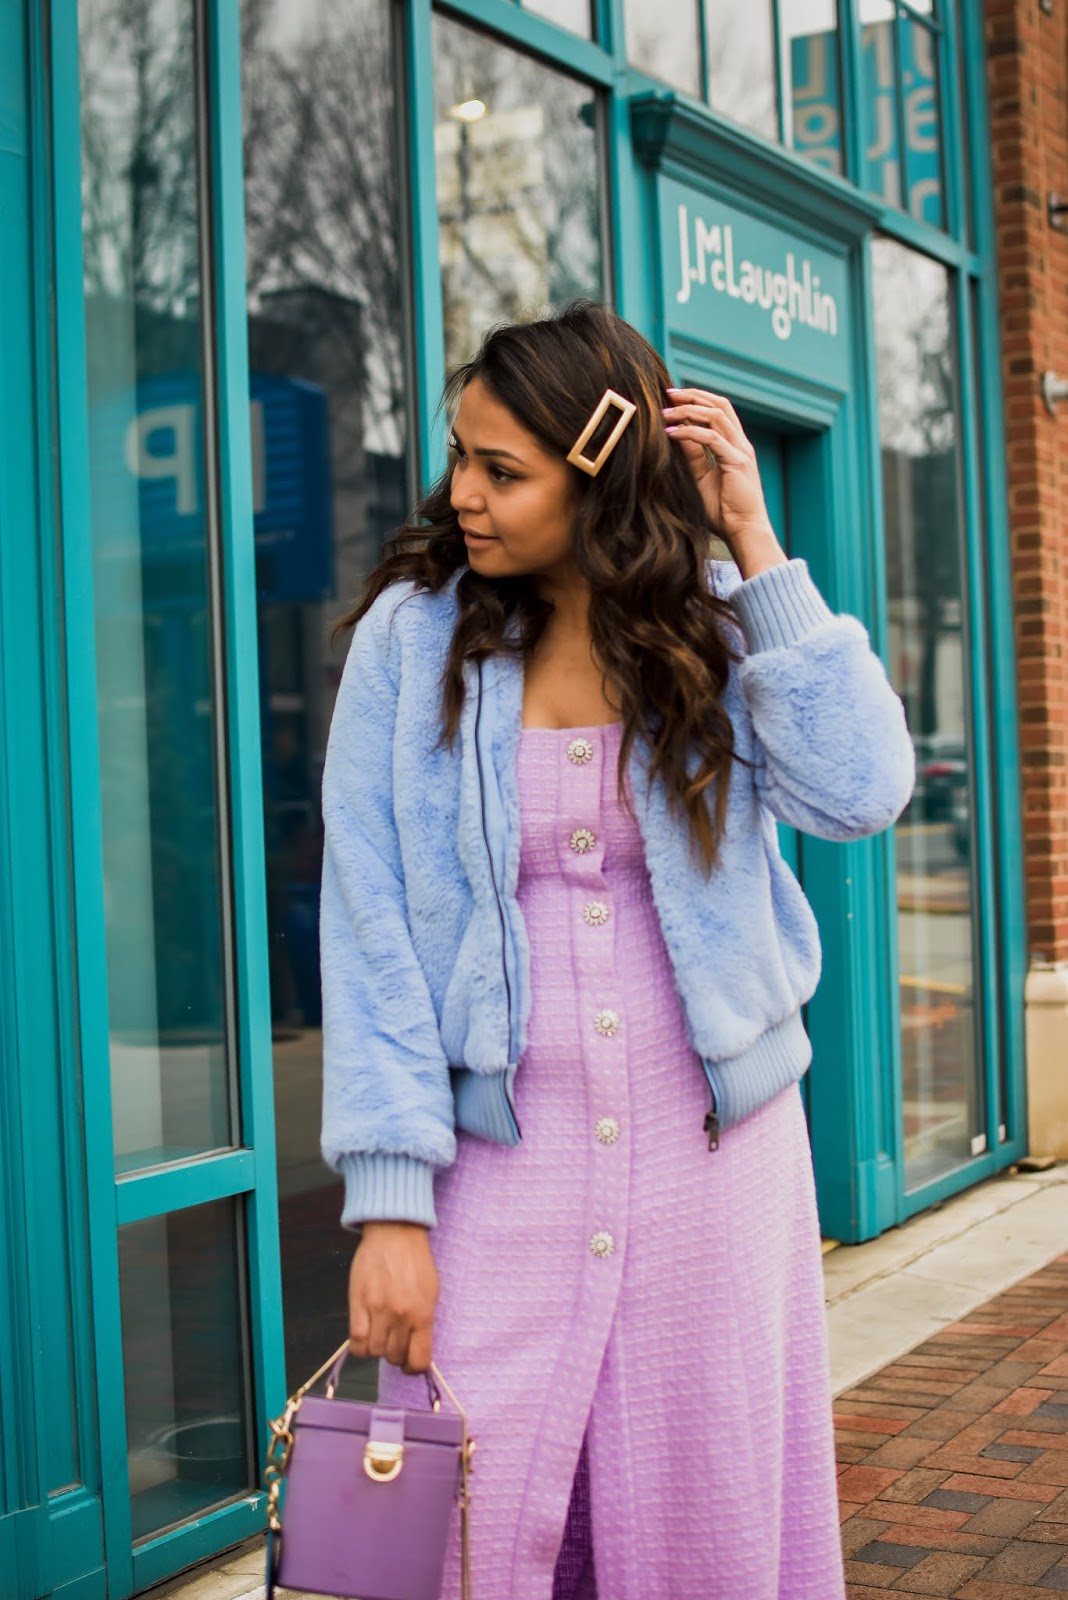 lilac zara dress, blue fur coat, DC blogger, tweed dress, tory burch pom pom mules, street style, drum bag, purple satin bag, barrel bag, myriad musings, saumya shiohare